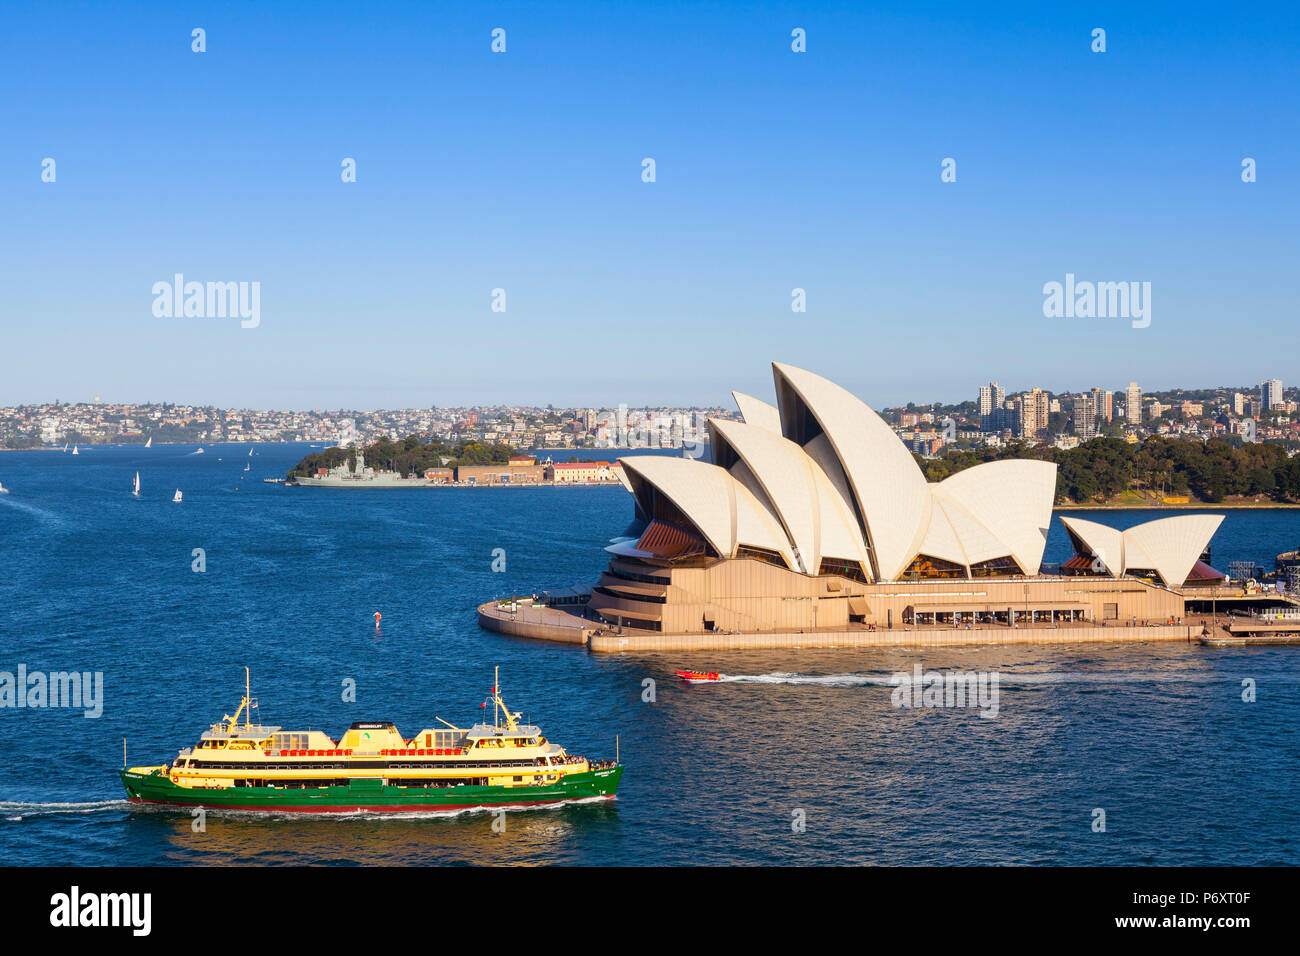 L'Opéra de Sydney, Darling Harbour, Sydney, New South Wales, Australia Photo Stock